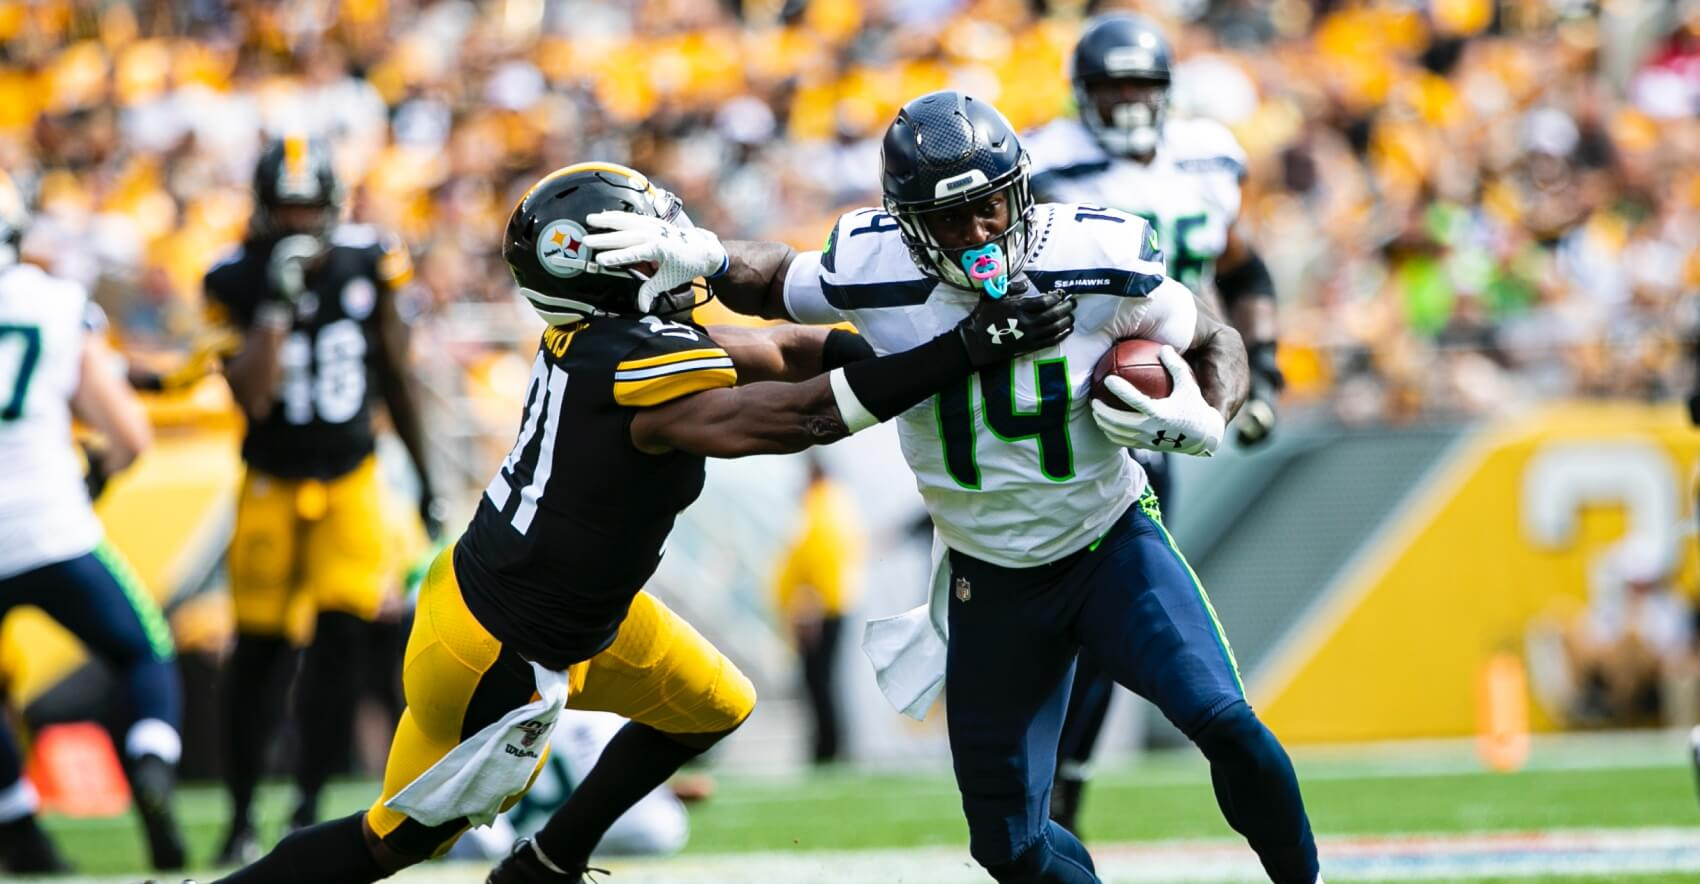 DFS WR vs CB Matchups to Monitor in Week 8